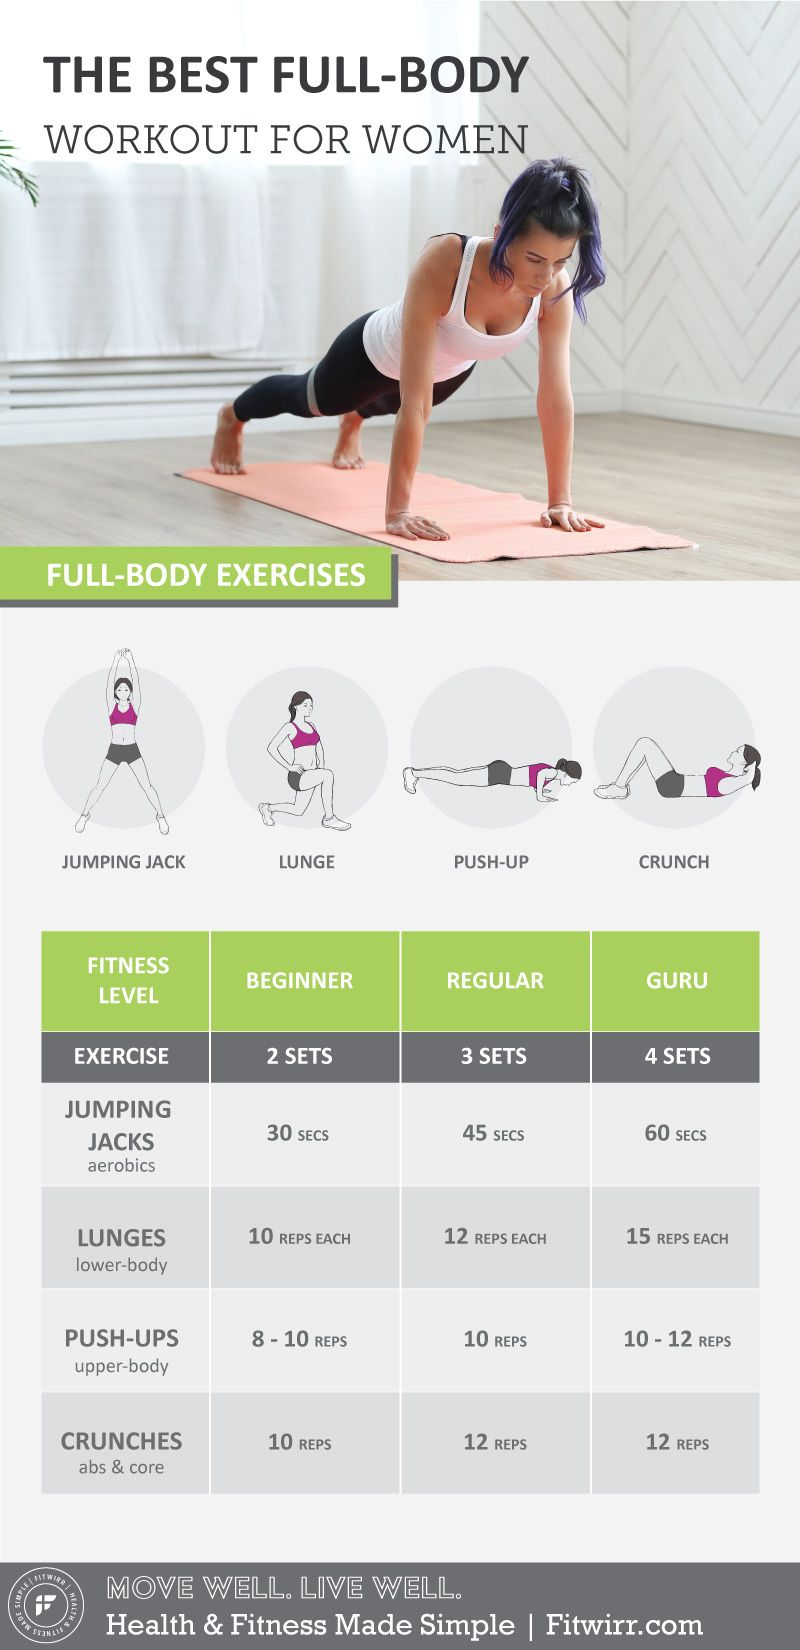 easy exercises you can do at home body workouts full body and